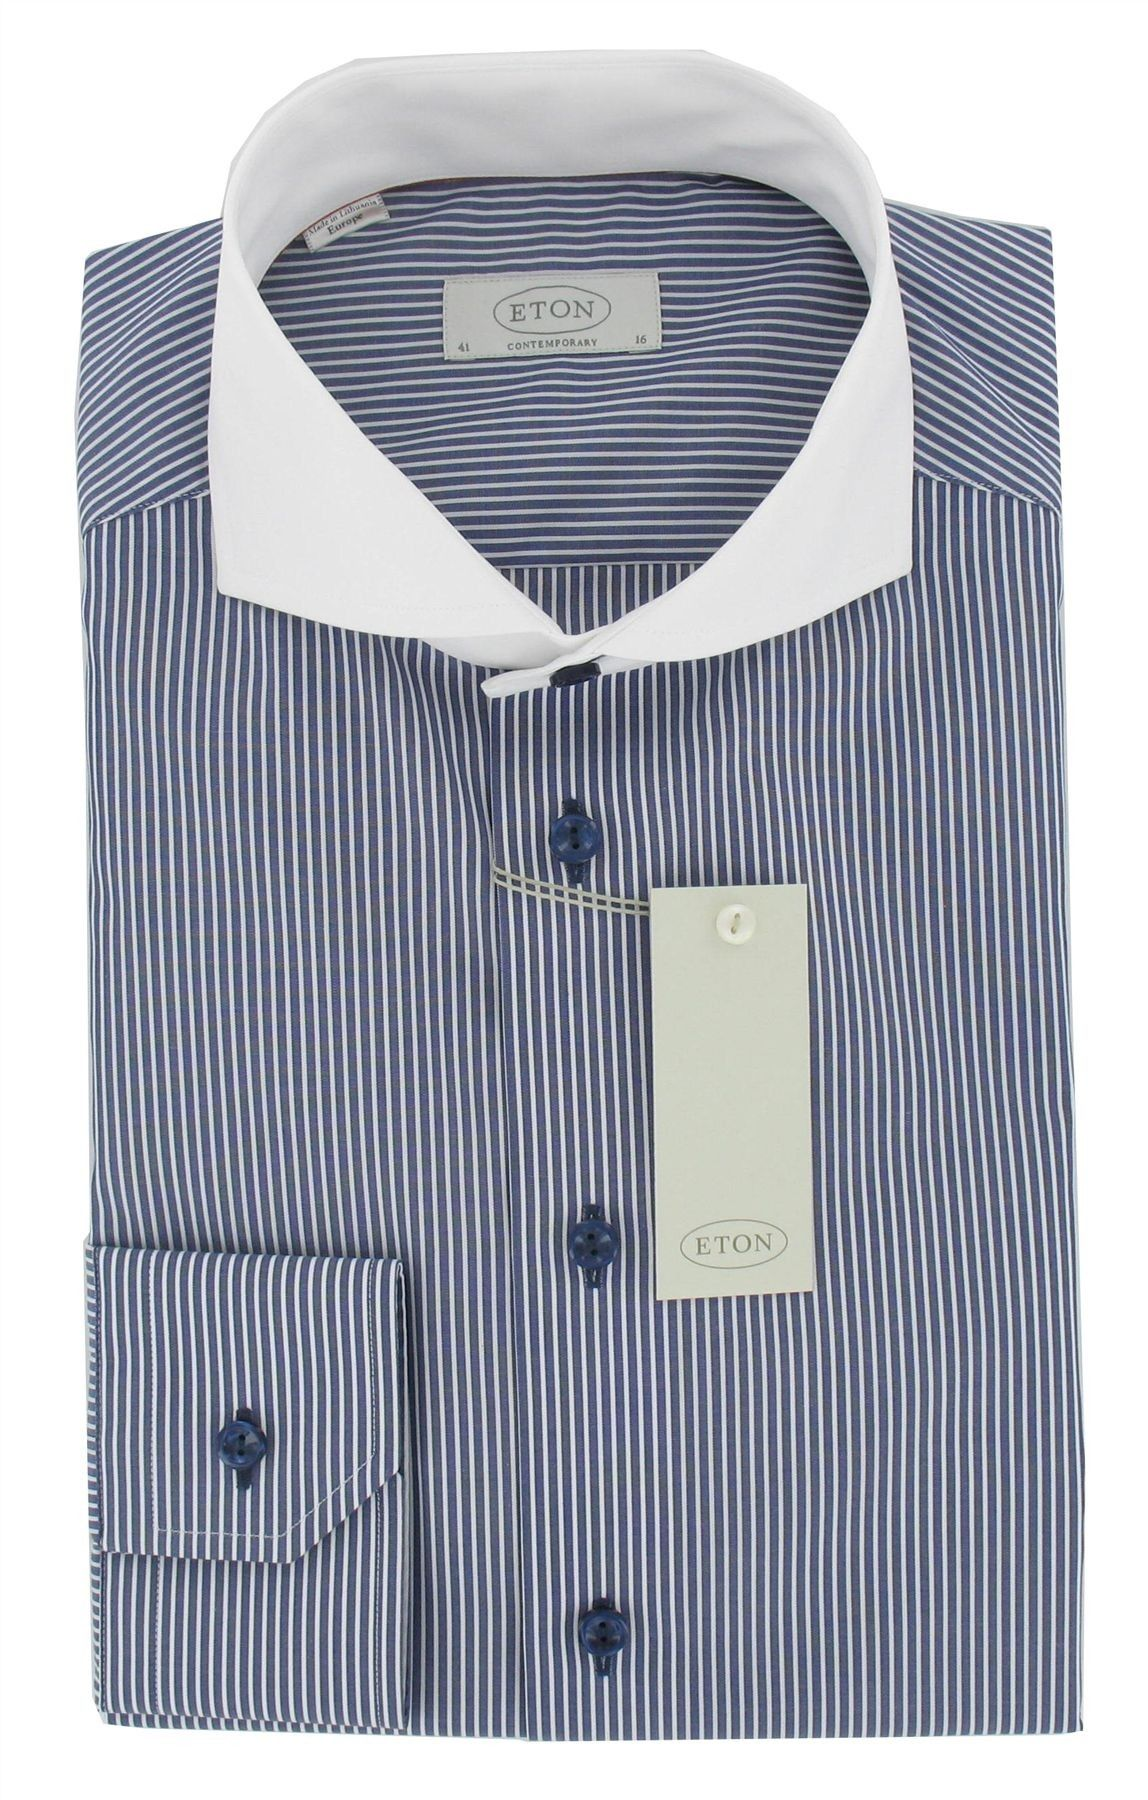 Eton Shirt Striped With Contrast Collar In Blue Contemporary Fit